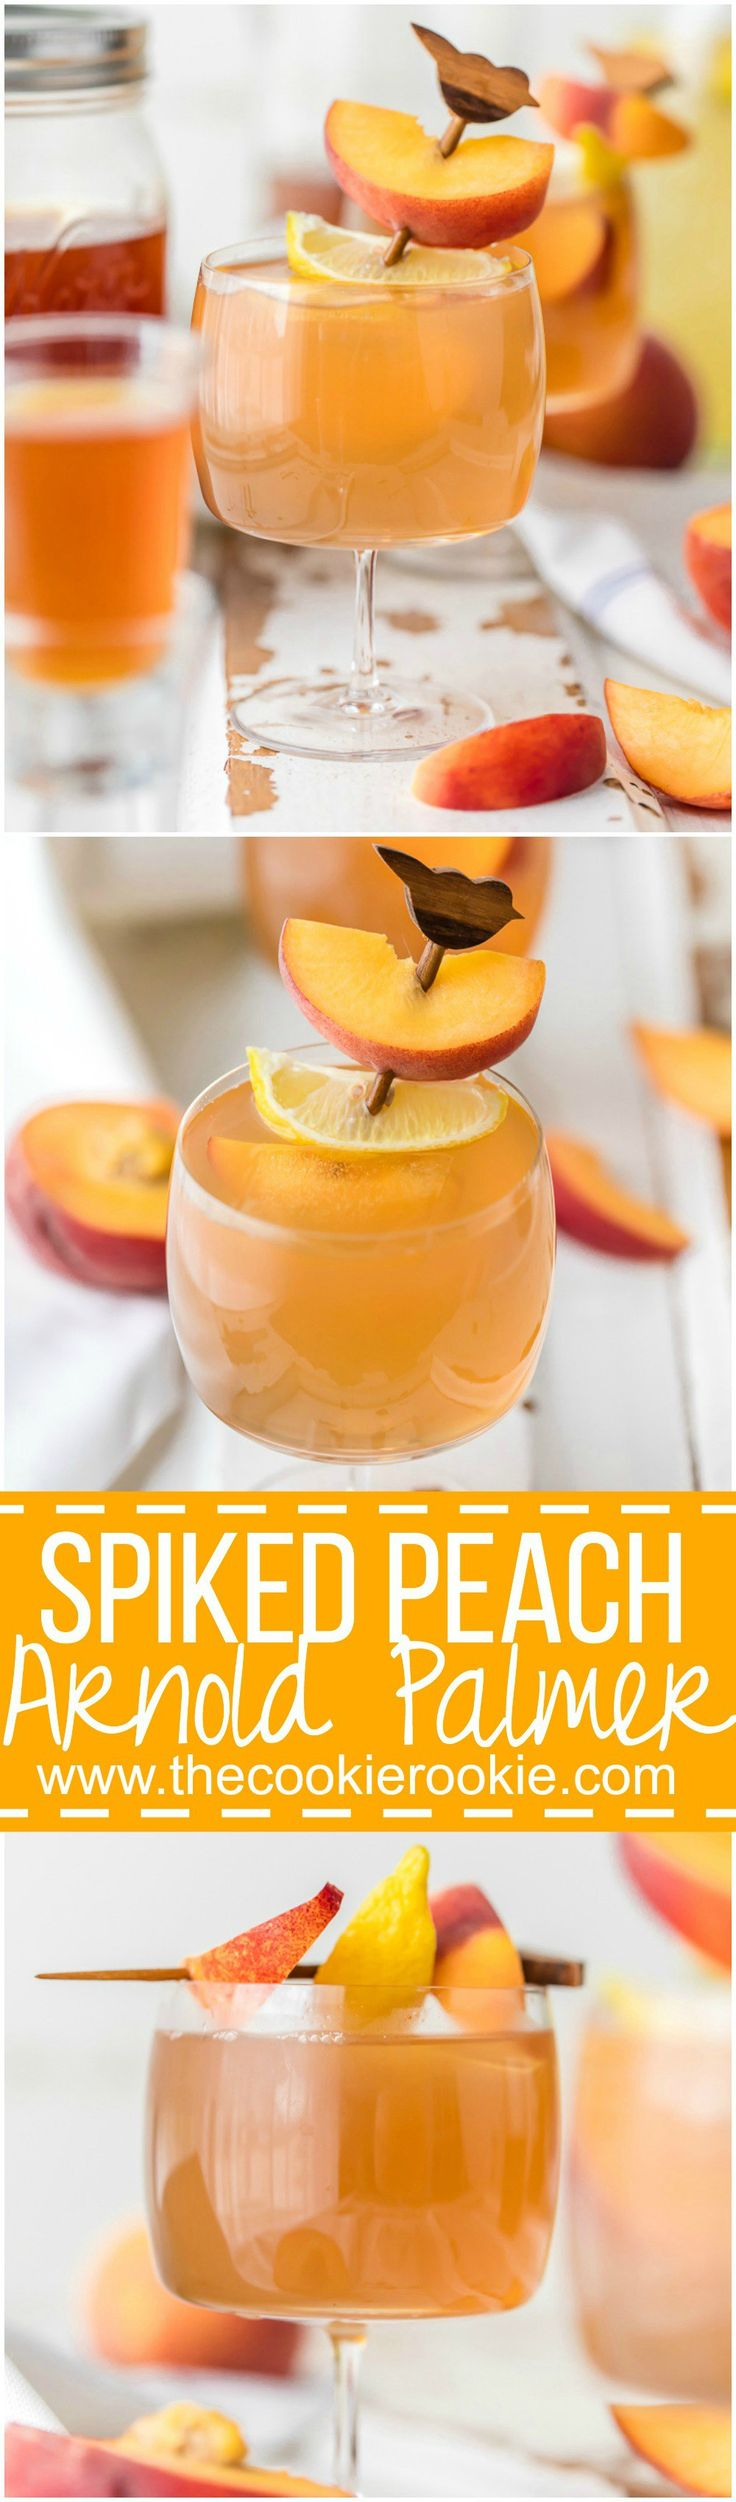 Spiked Peach Arnold Palmer is a fun and refreshing Summer Cocktail! Made with Homemade Peach Tea Vodka, delicious!